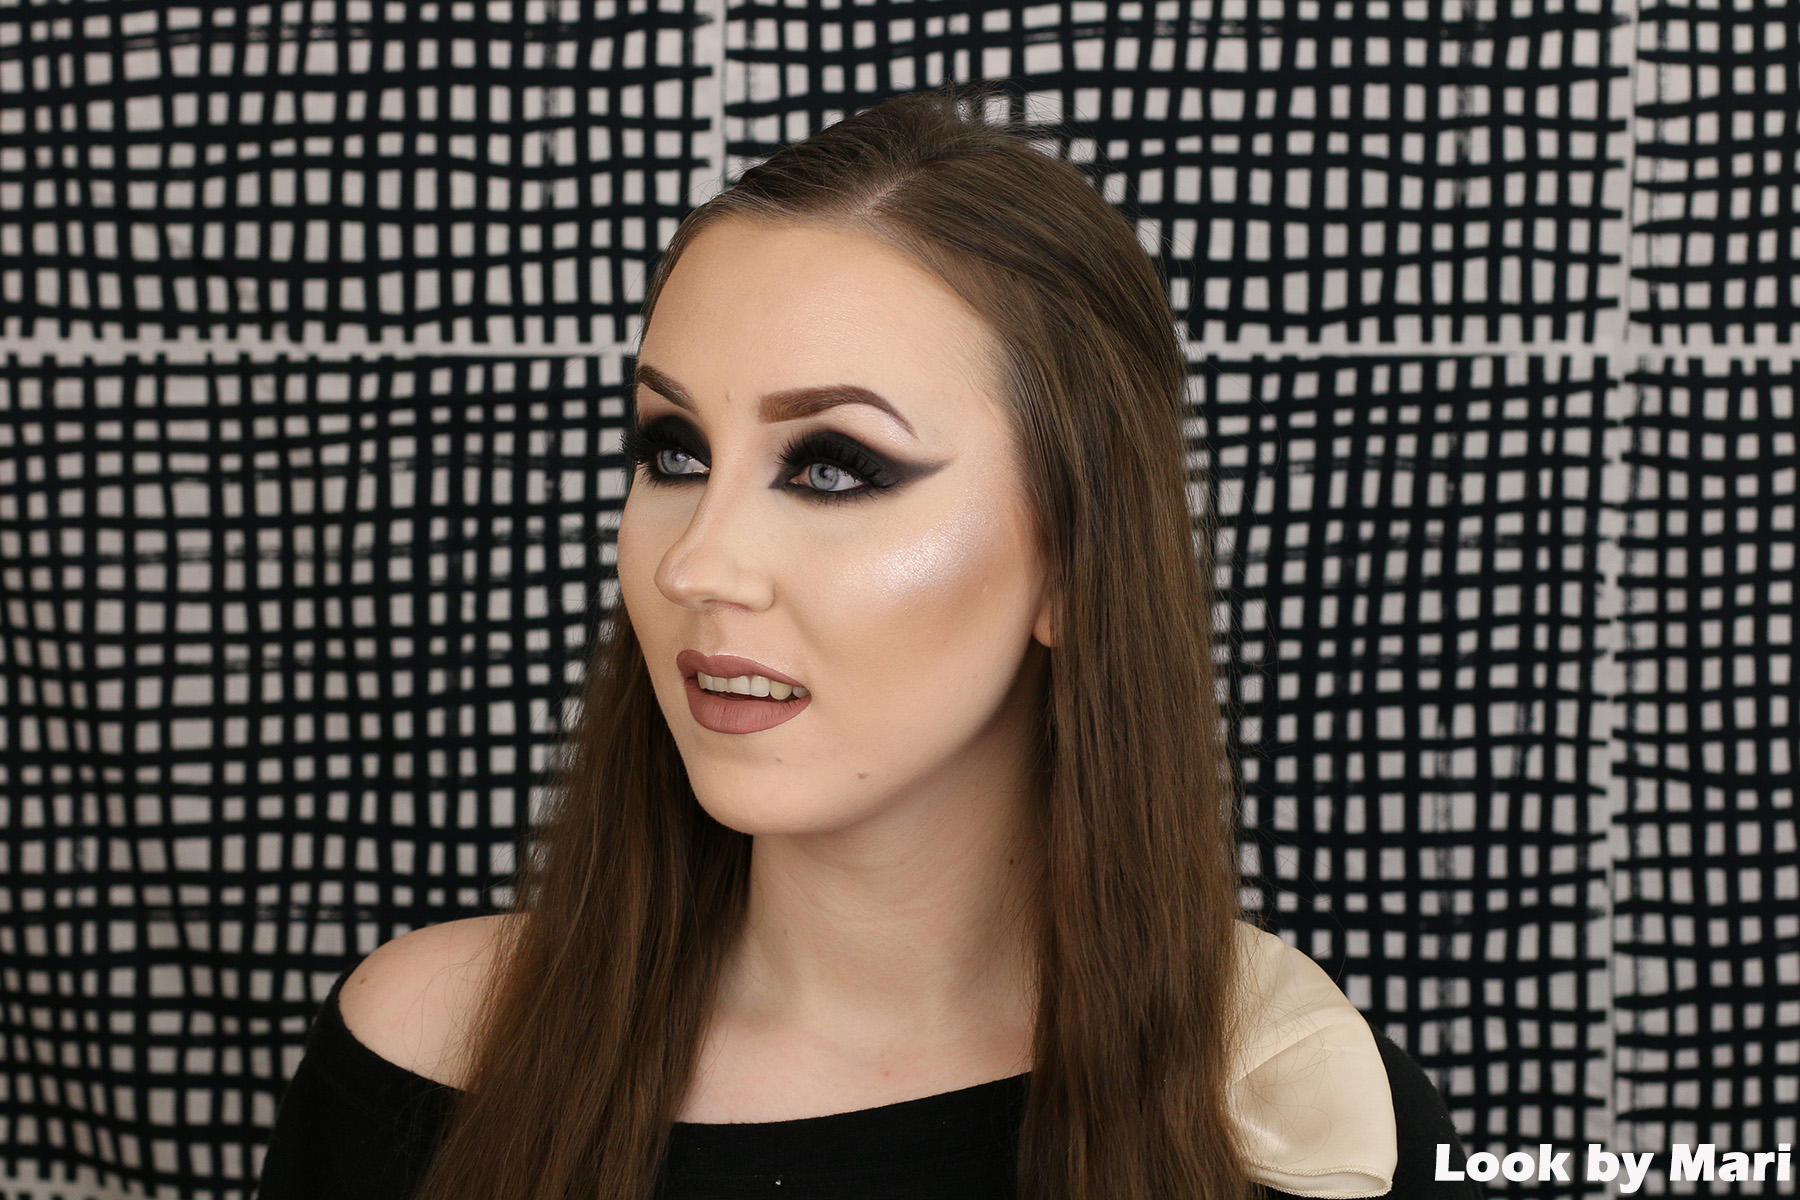 6 sweed x by terry terryfic 3D lashes inspo ideas makeup-2